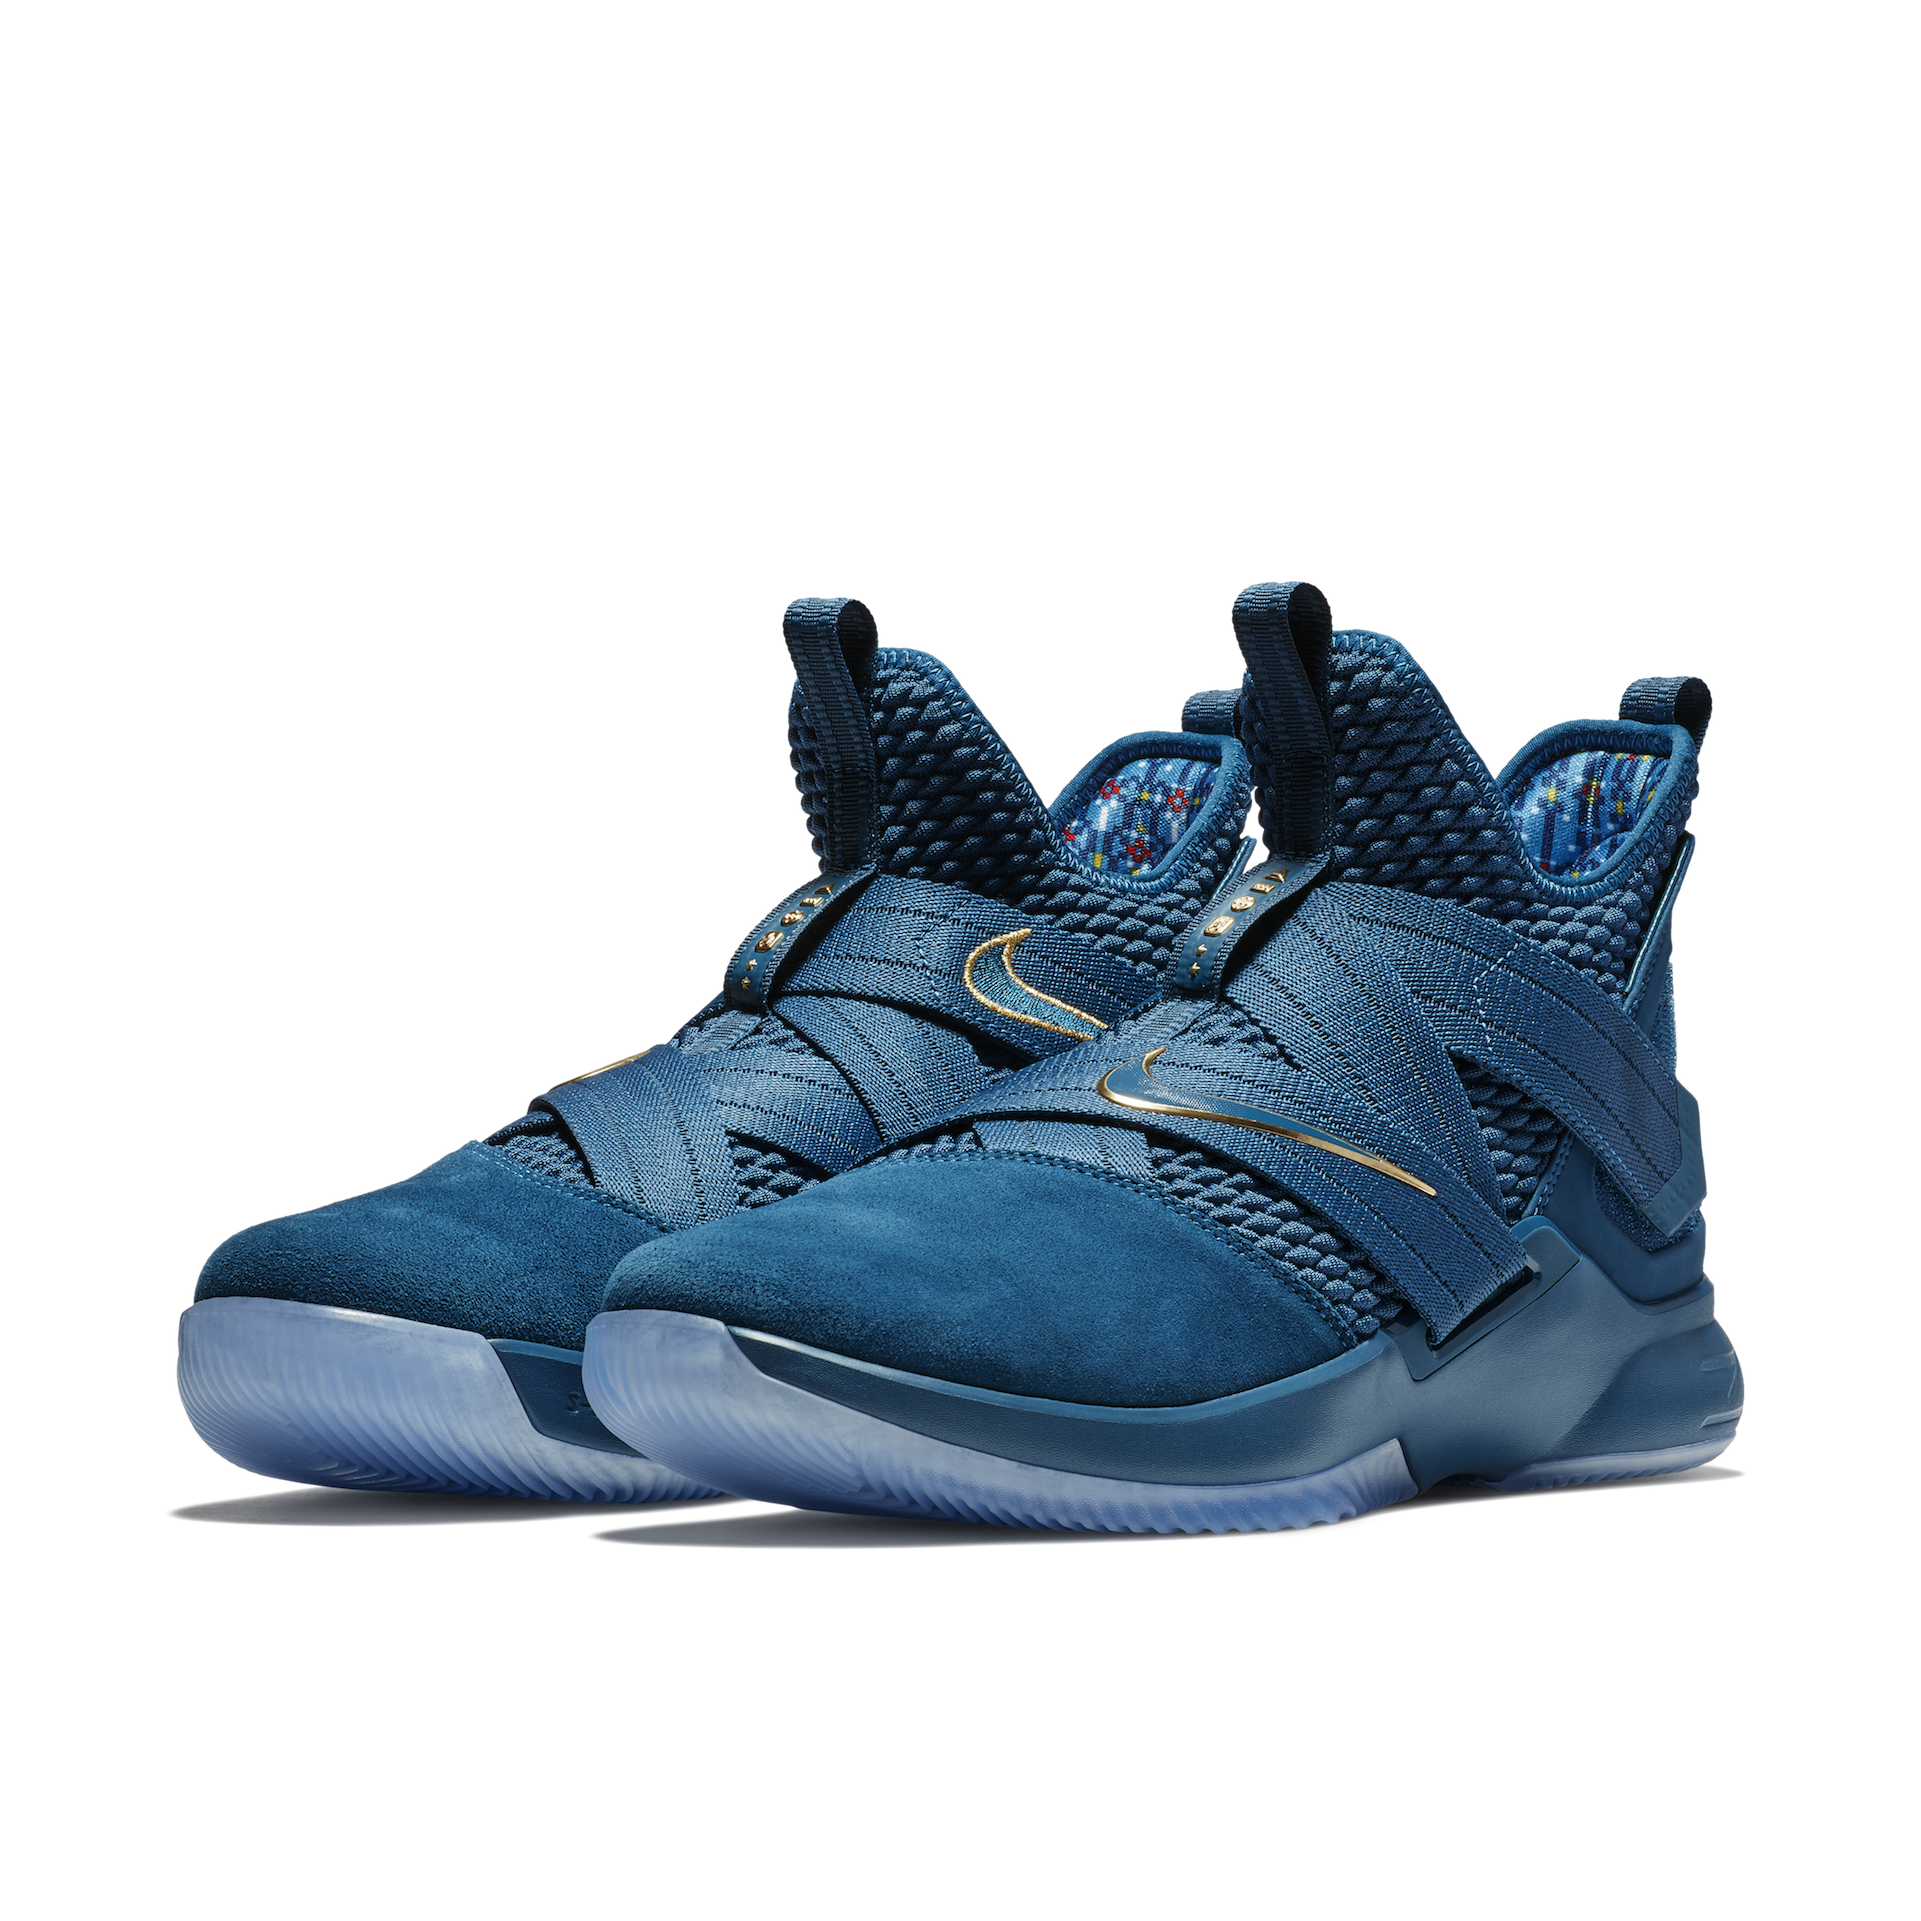 20a3322b44e Nike Introduces the Lebron Soldier 12  Agimat  Set to Release This Month